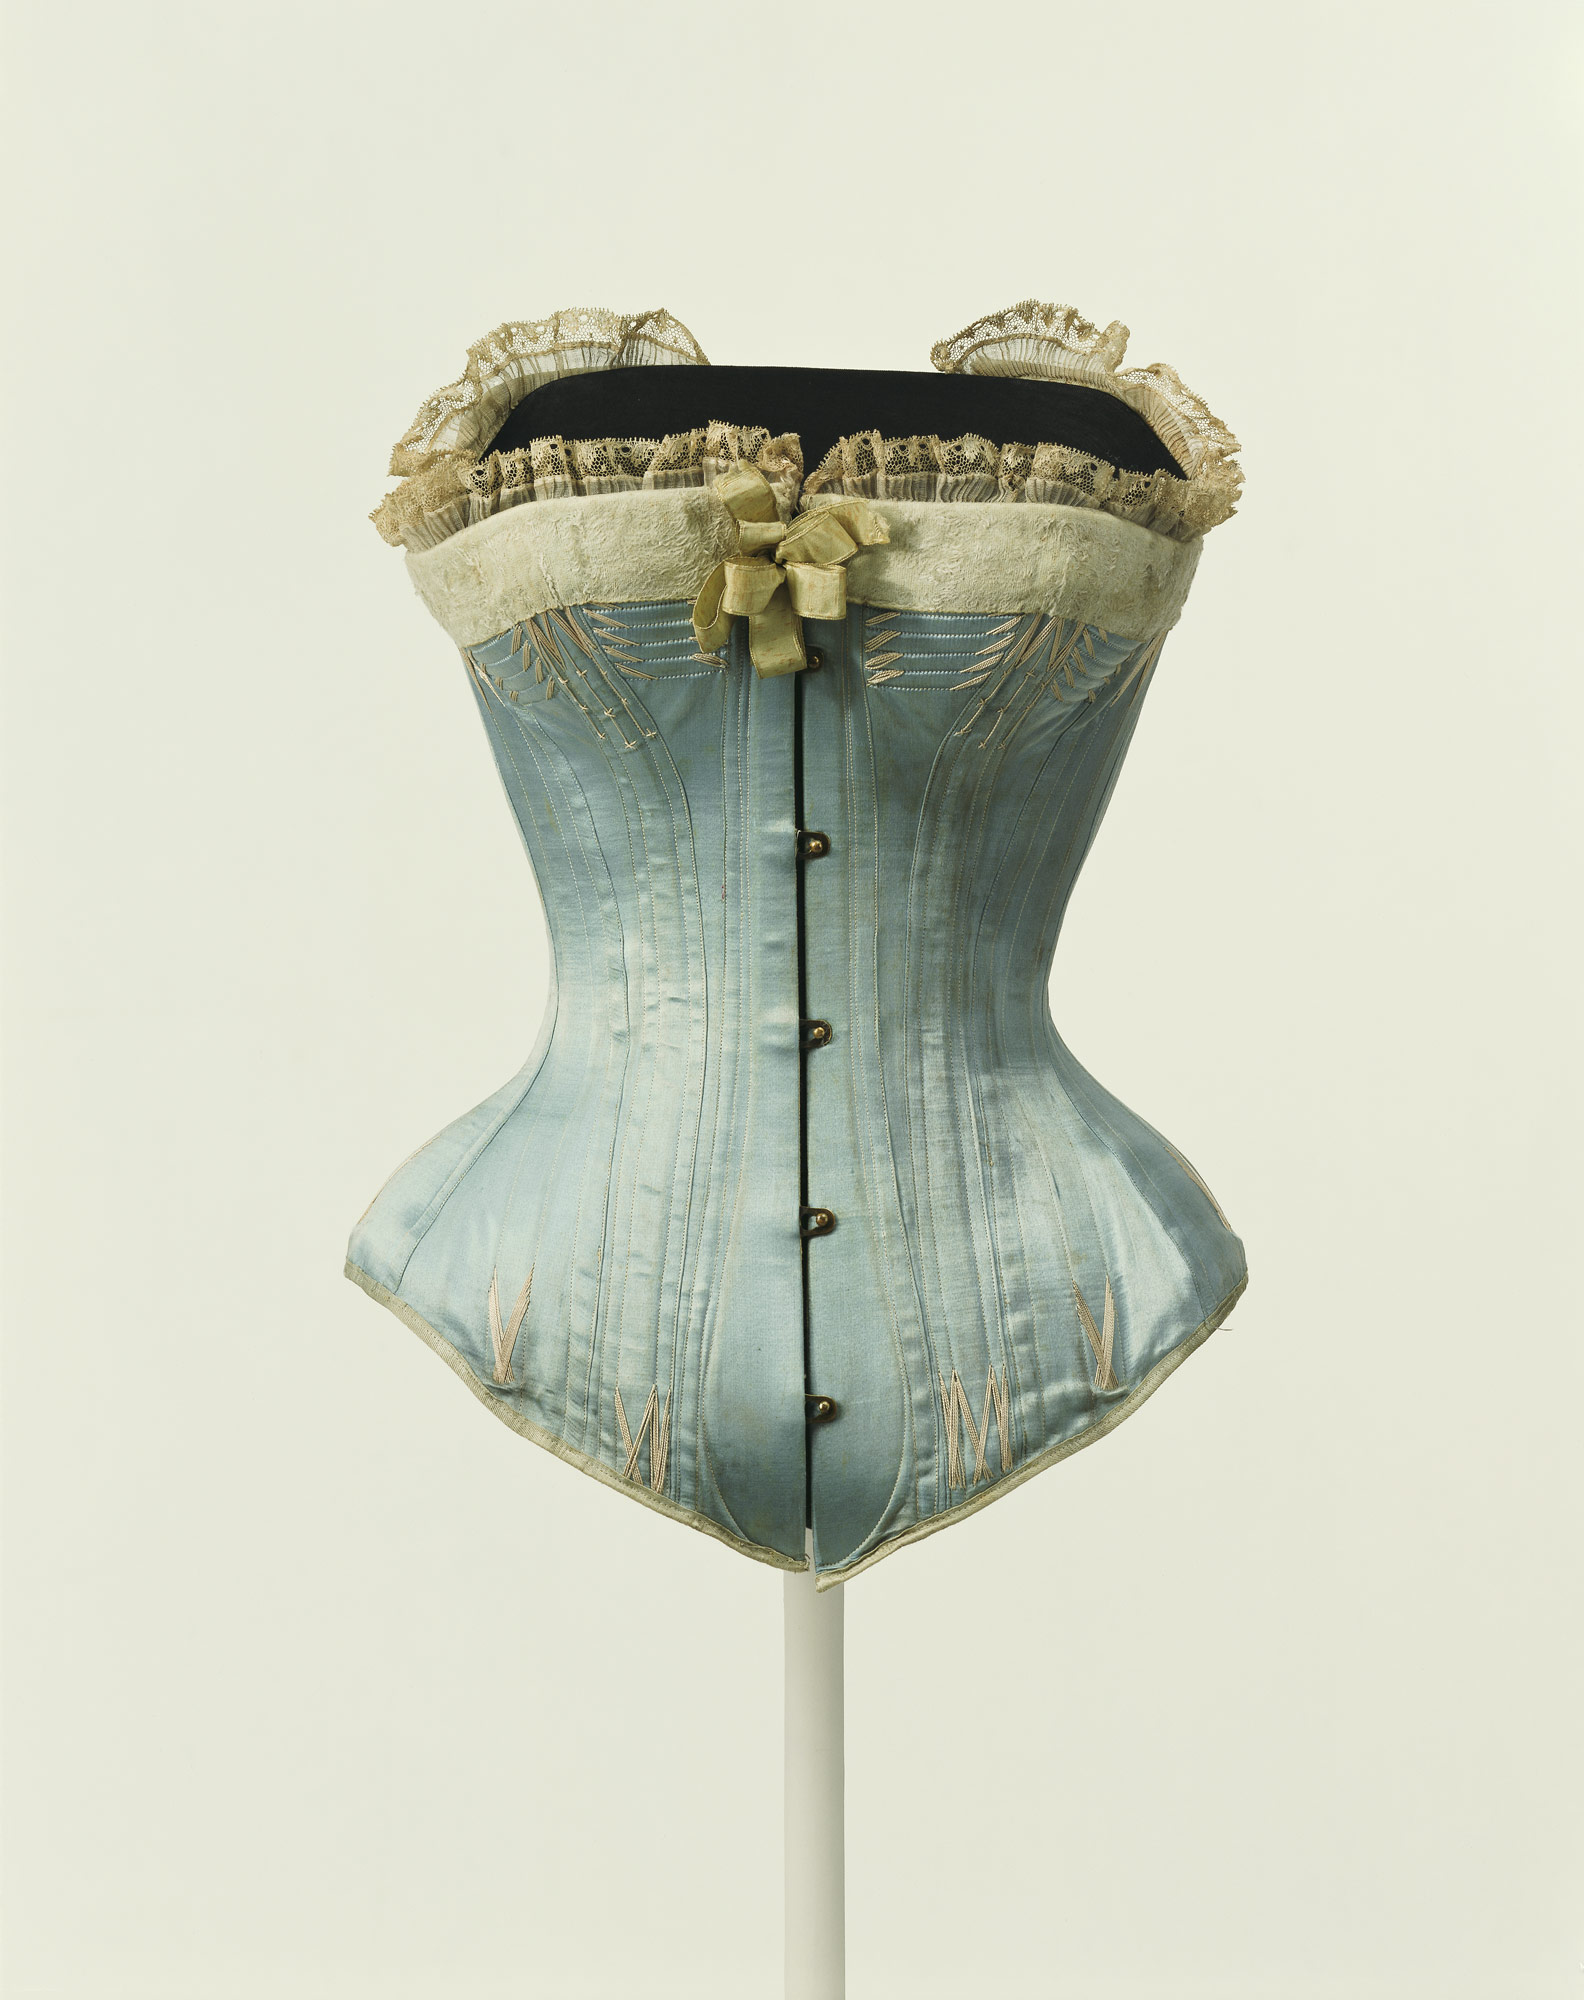 Inspired by Kelly: Antique blue satin corset